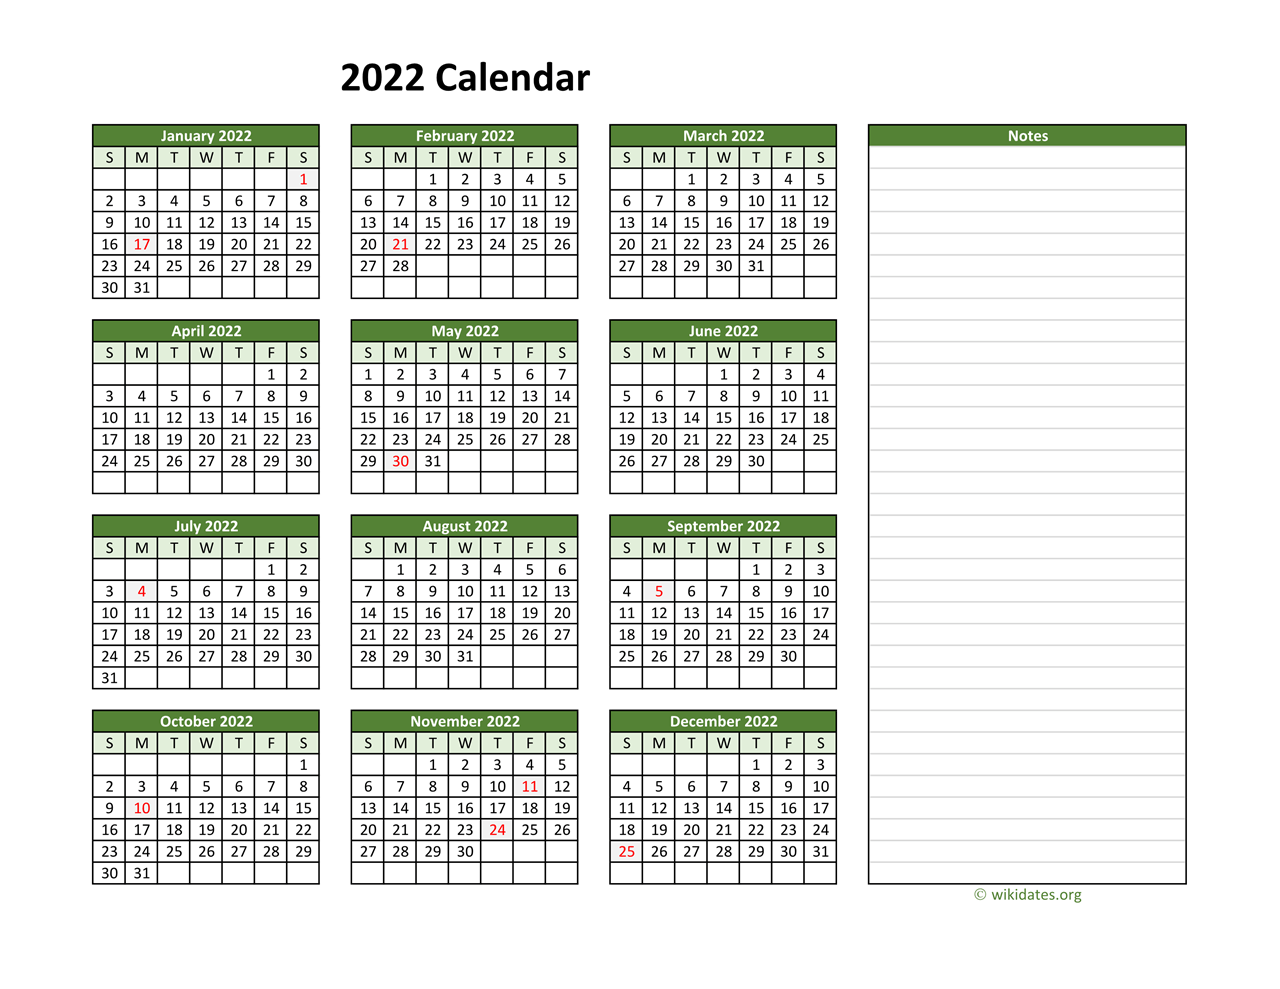 Yearly Printable 2022 Calendar with Notes   WikiDates.org